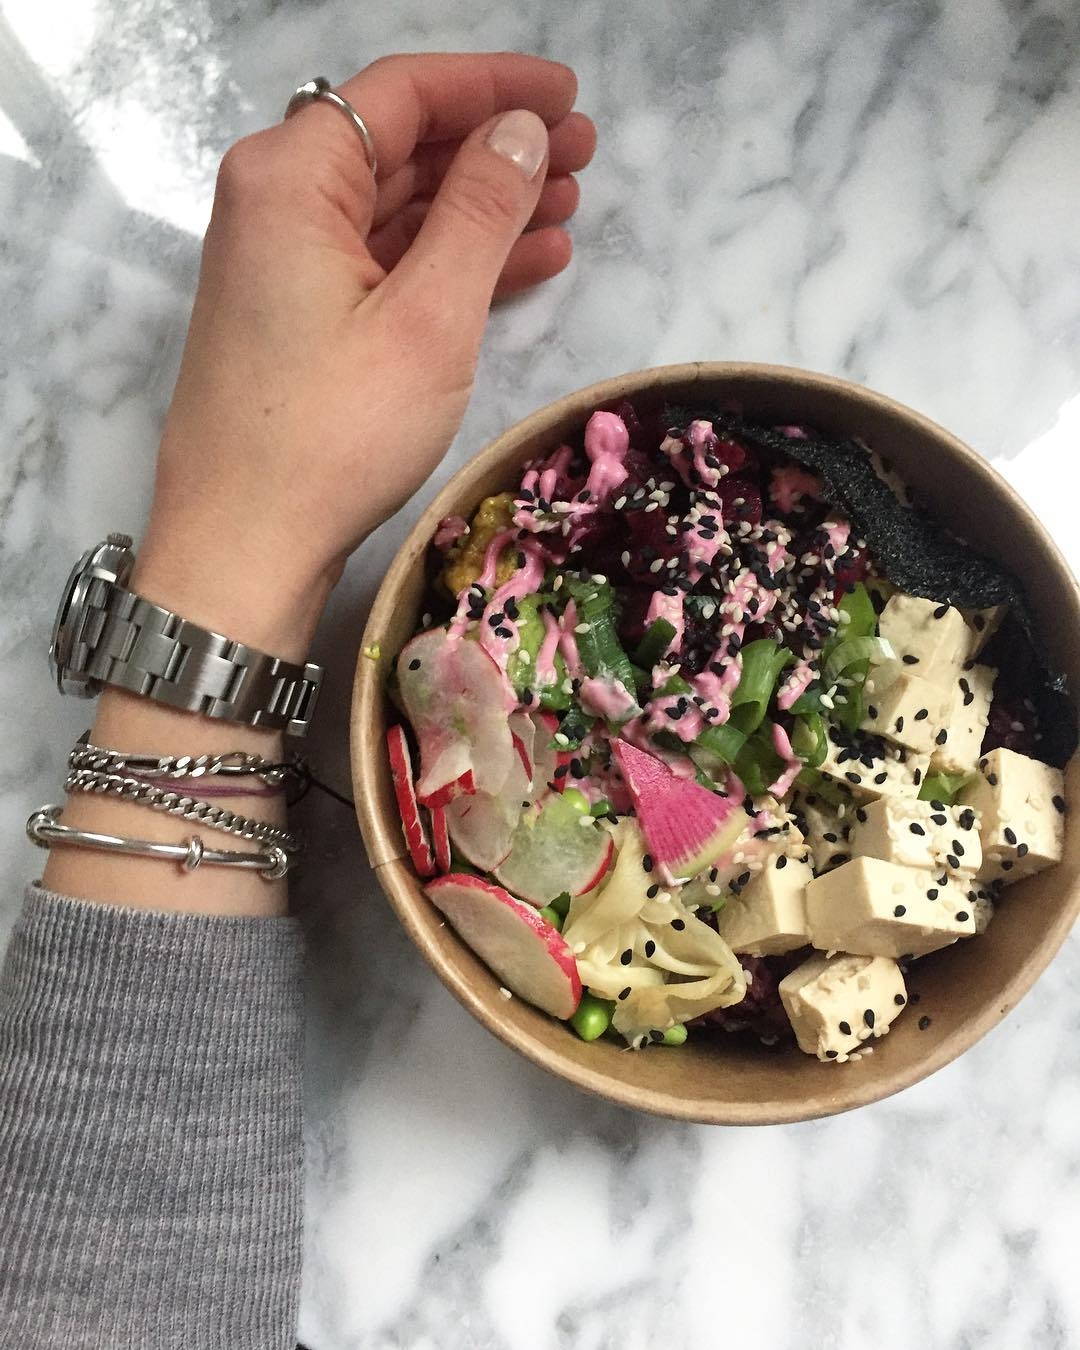 Pretty lunch and soo delicious ombakbowls ombakbowls veganbowl veggiebowl